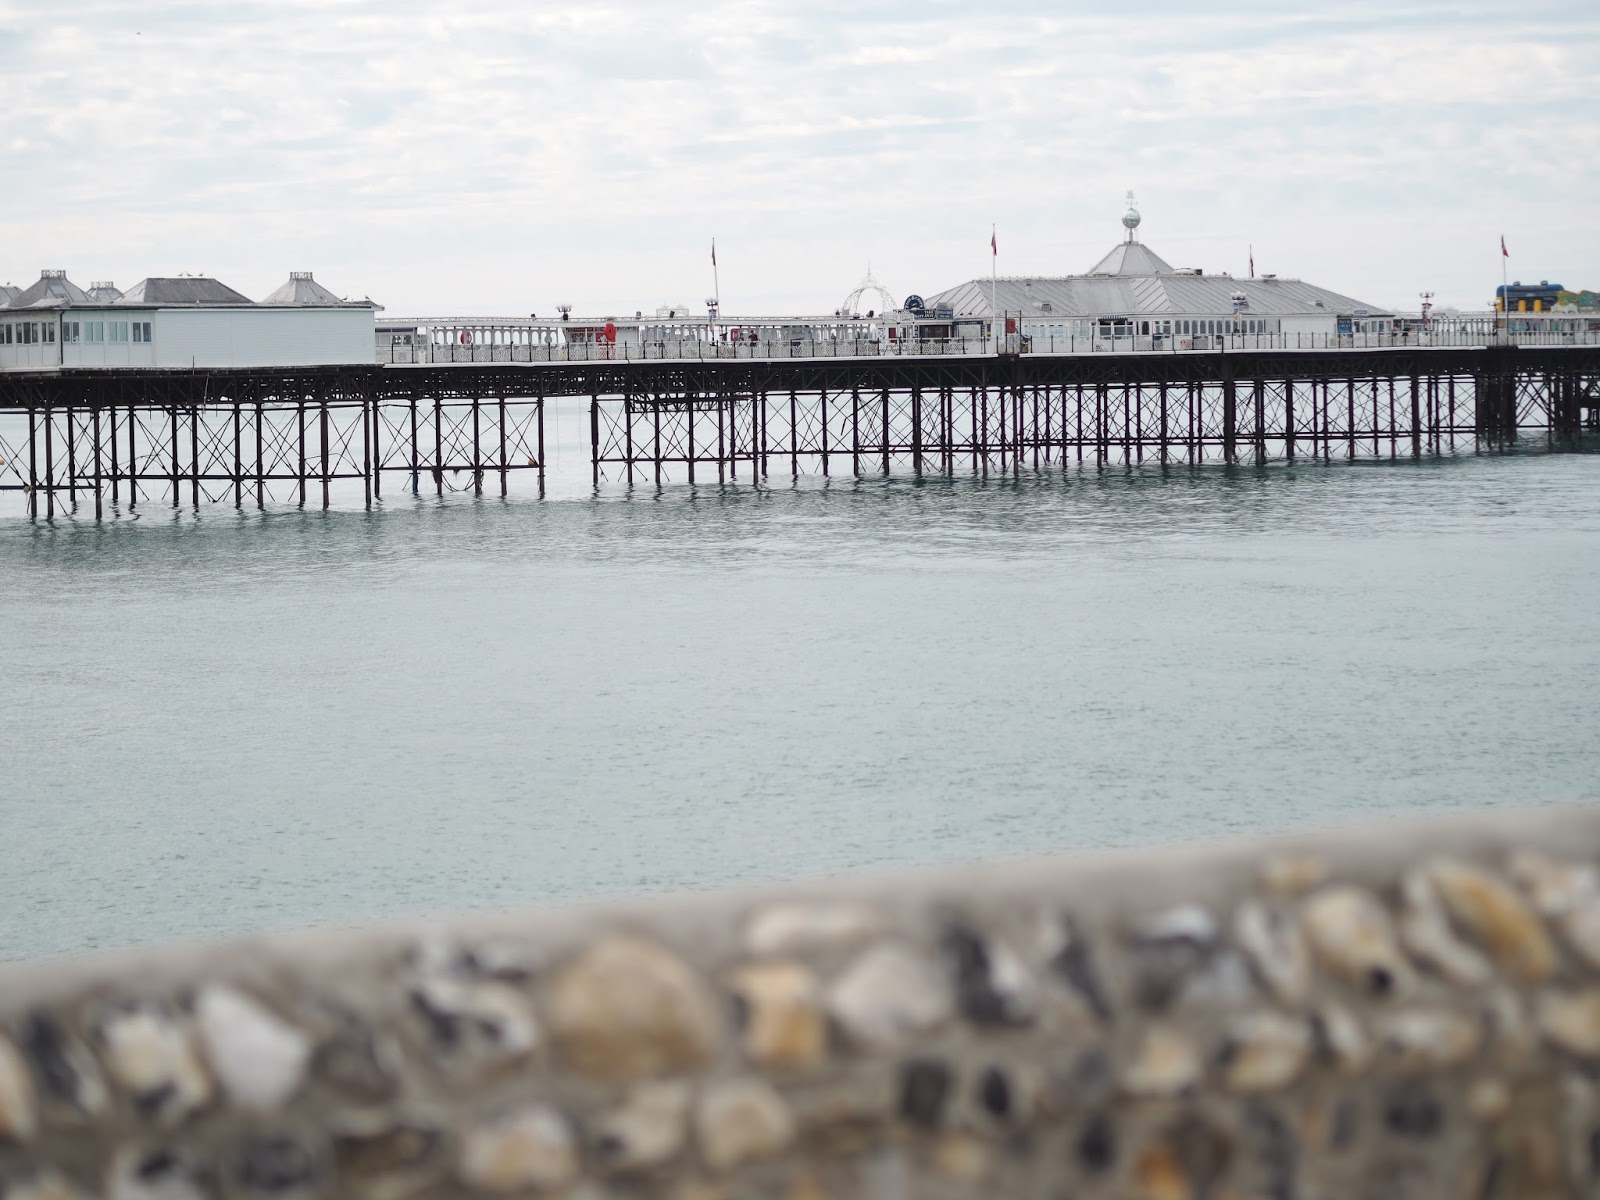 View of Brighton pier